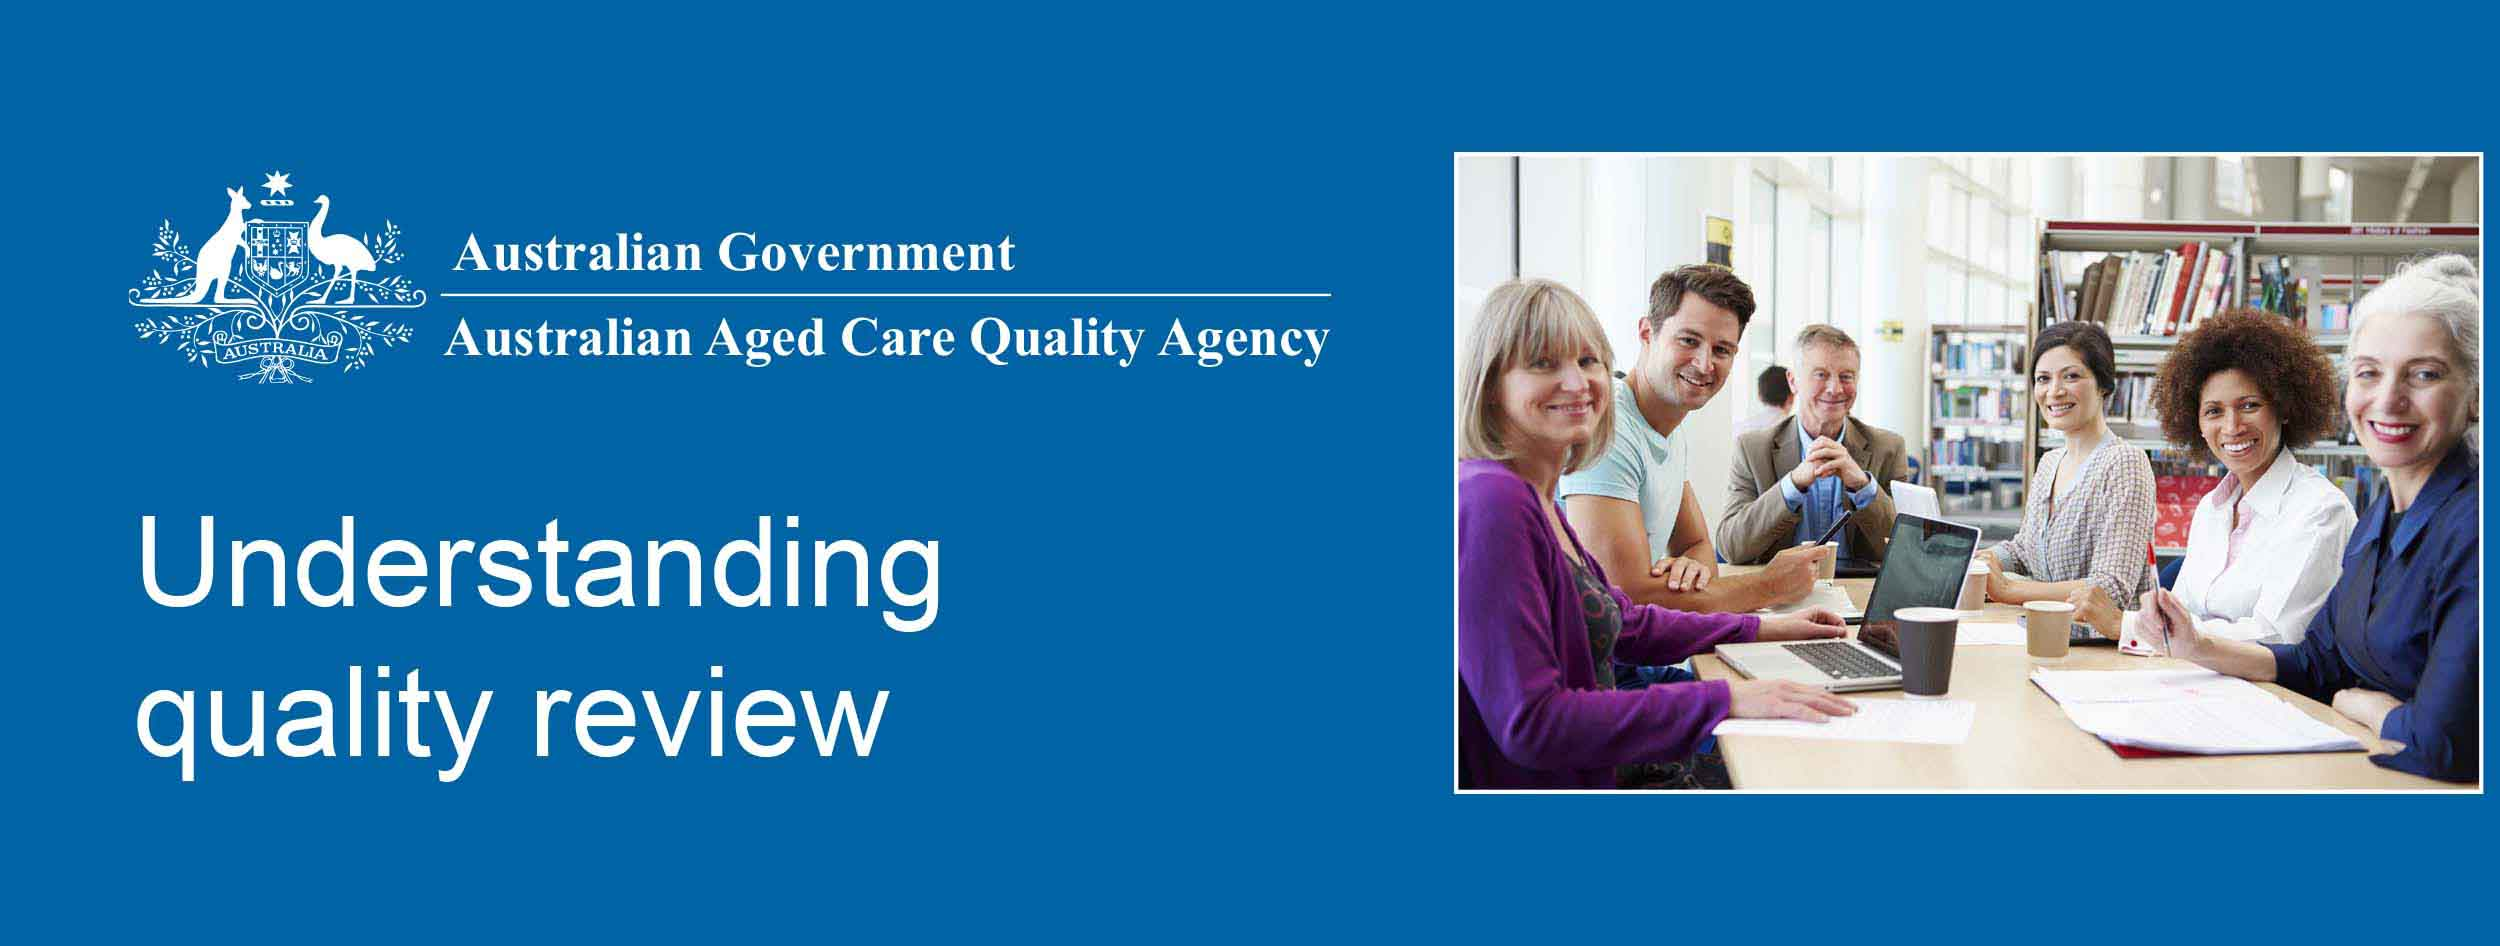 Understanding quality review - Parramatta - 12 - 13 September 2017